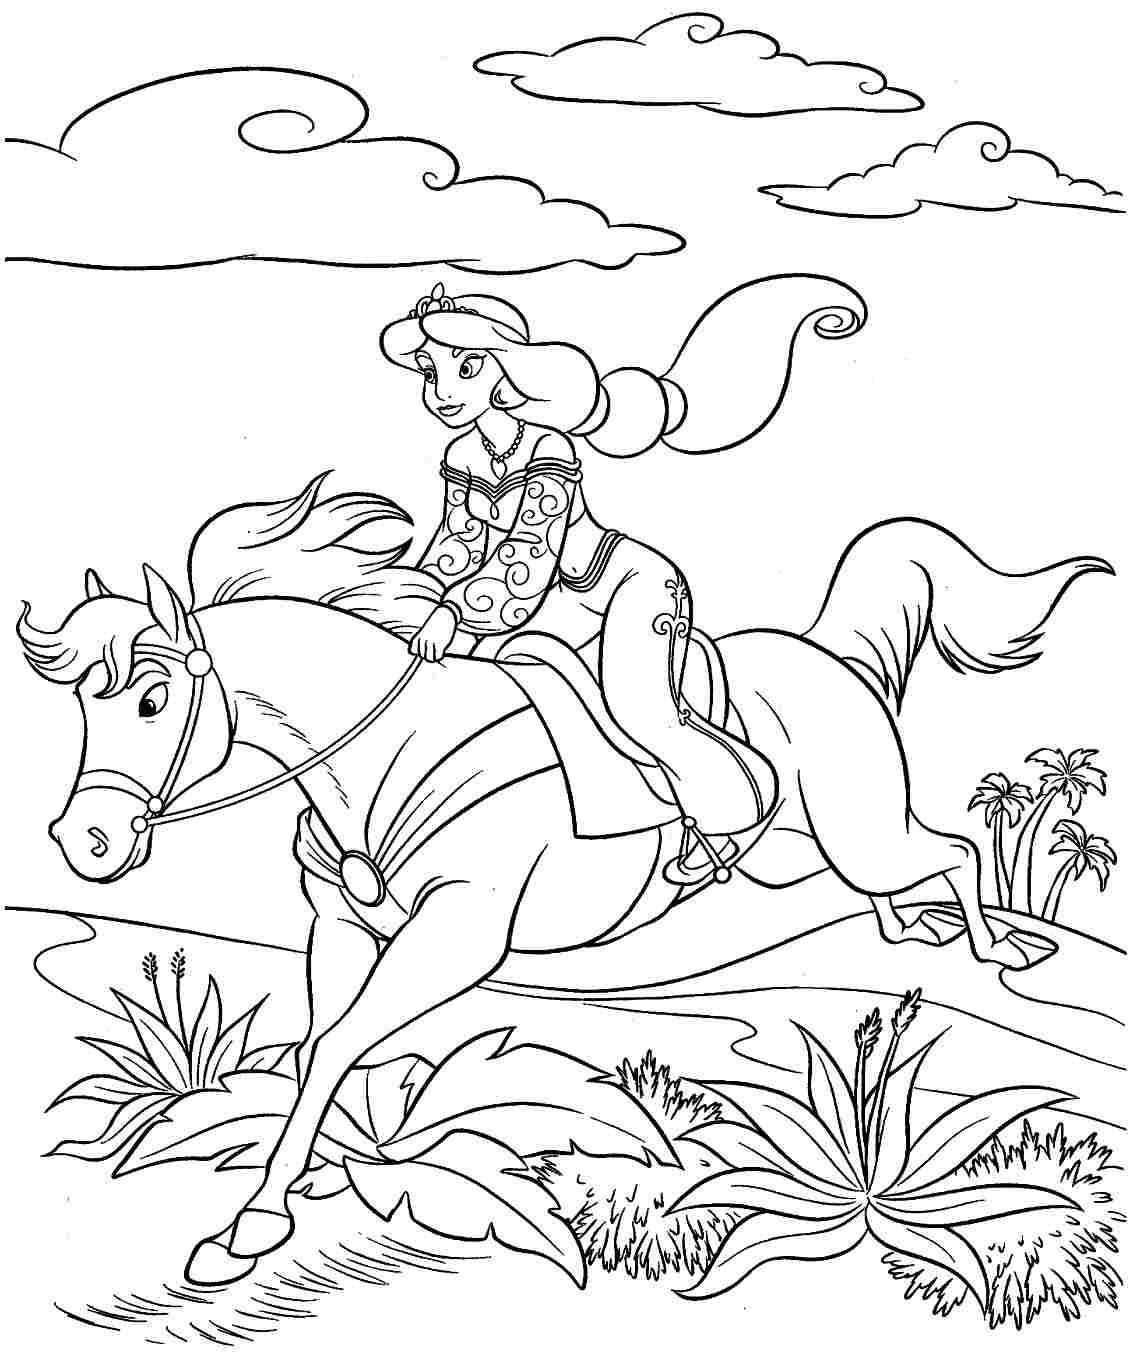 Coloring Pages Disney Princess Jasmine Printable For Kids & Boys ...